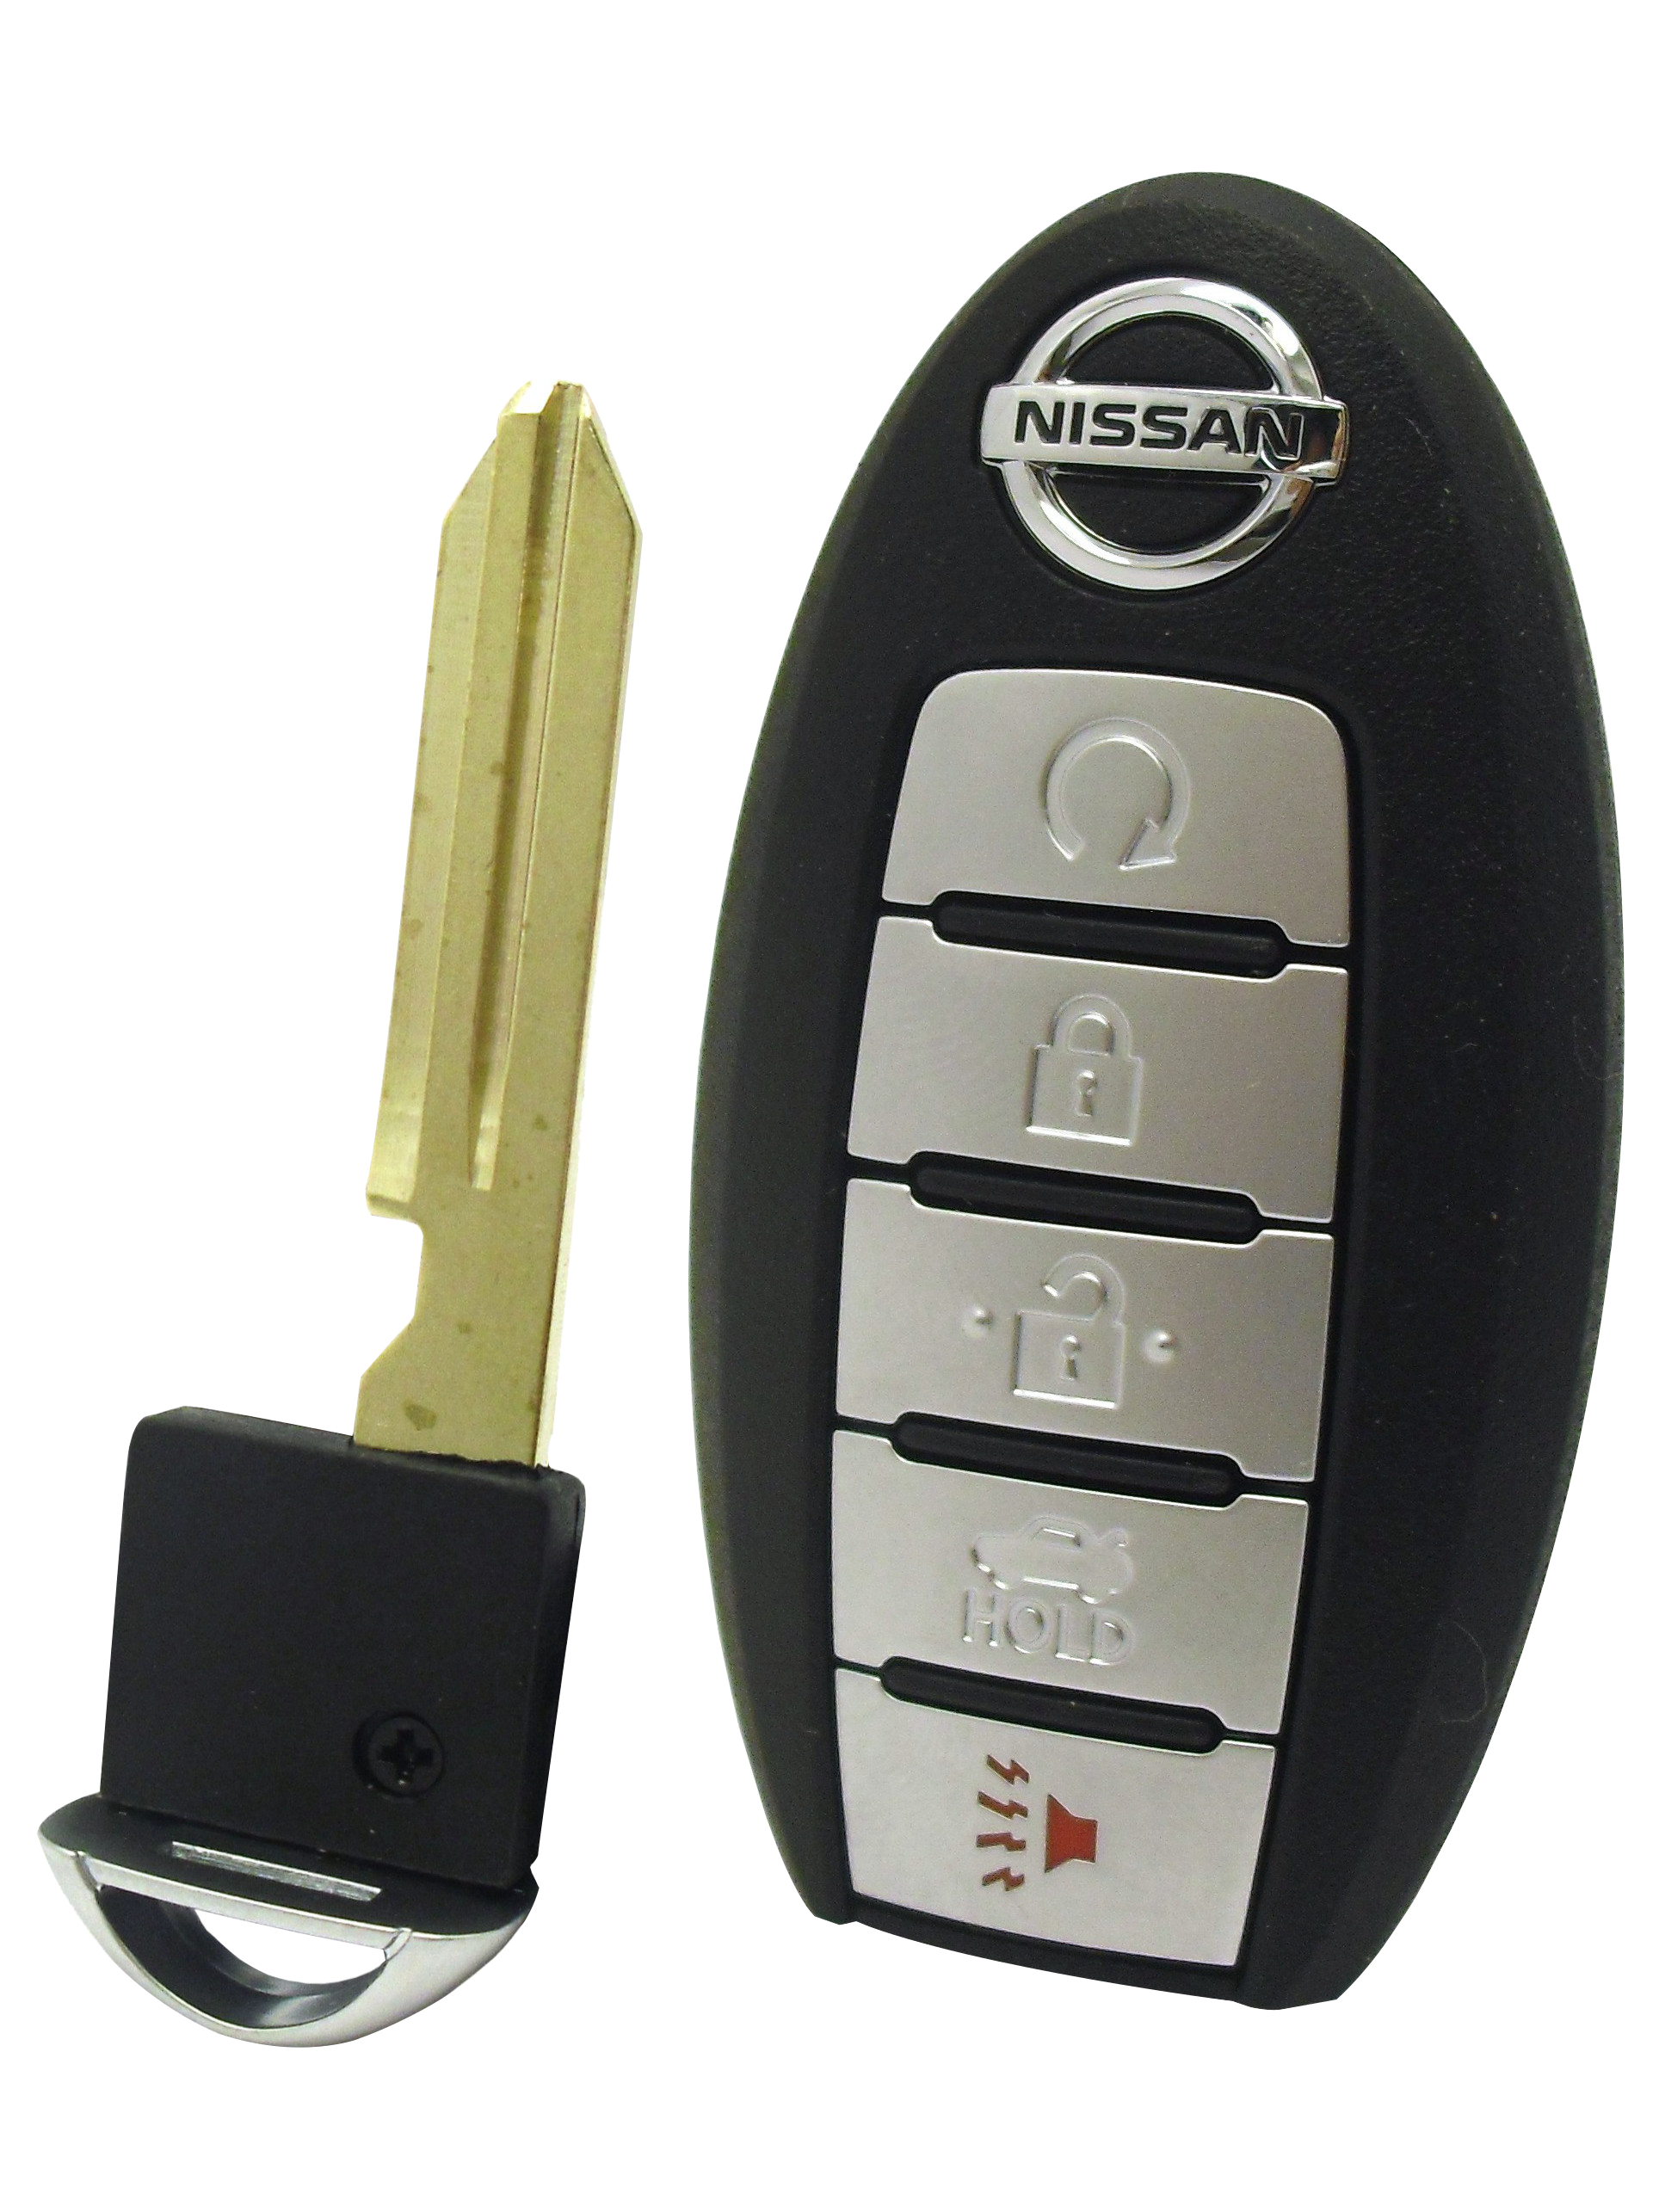 Nissan Remote Entry Smart Key - 5 Button w/ Remote Start